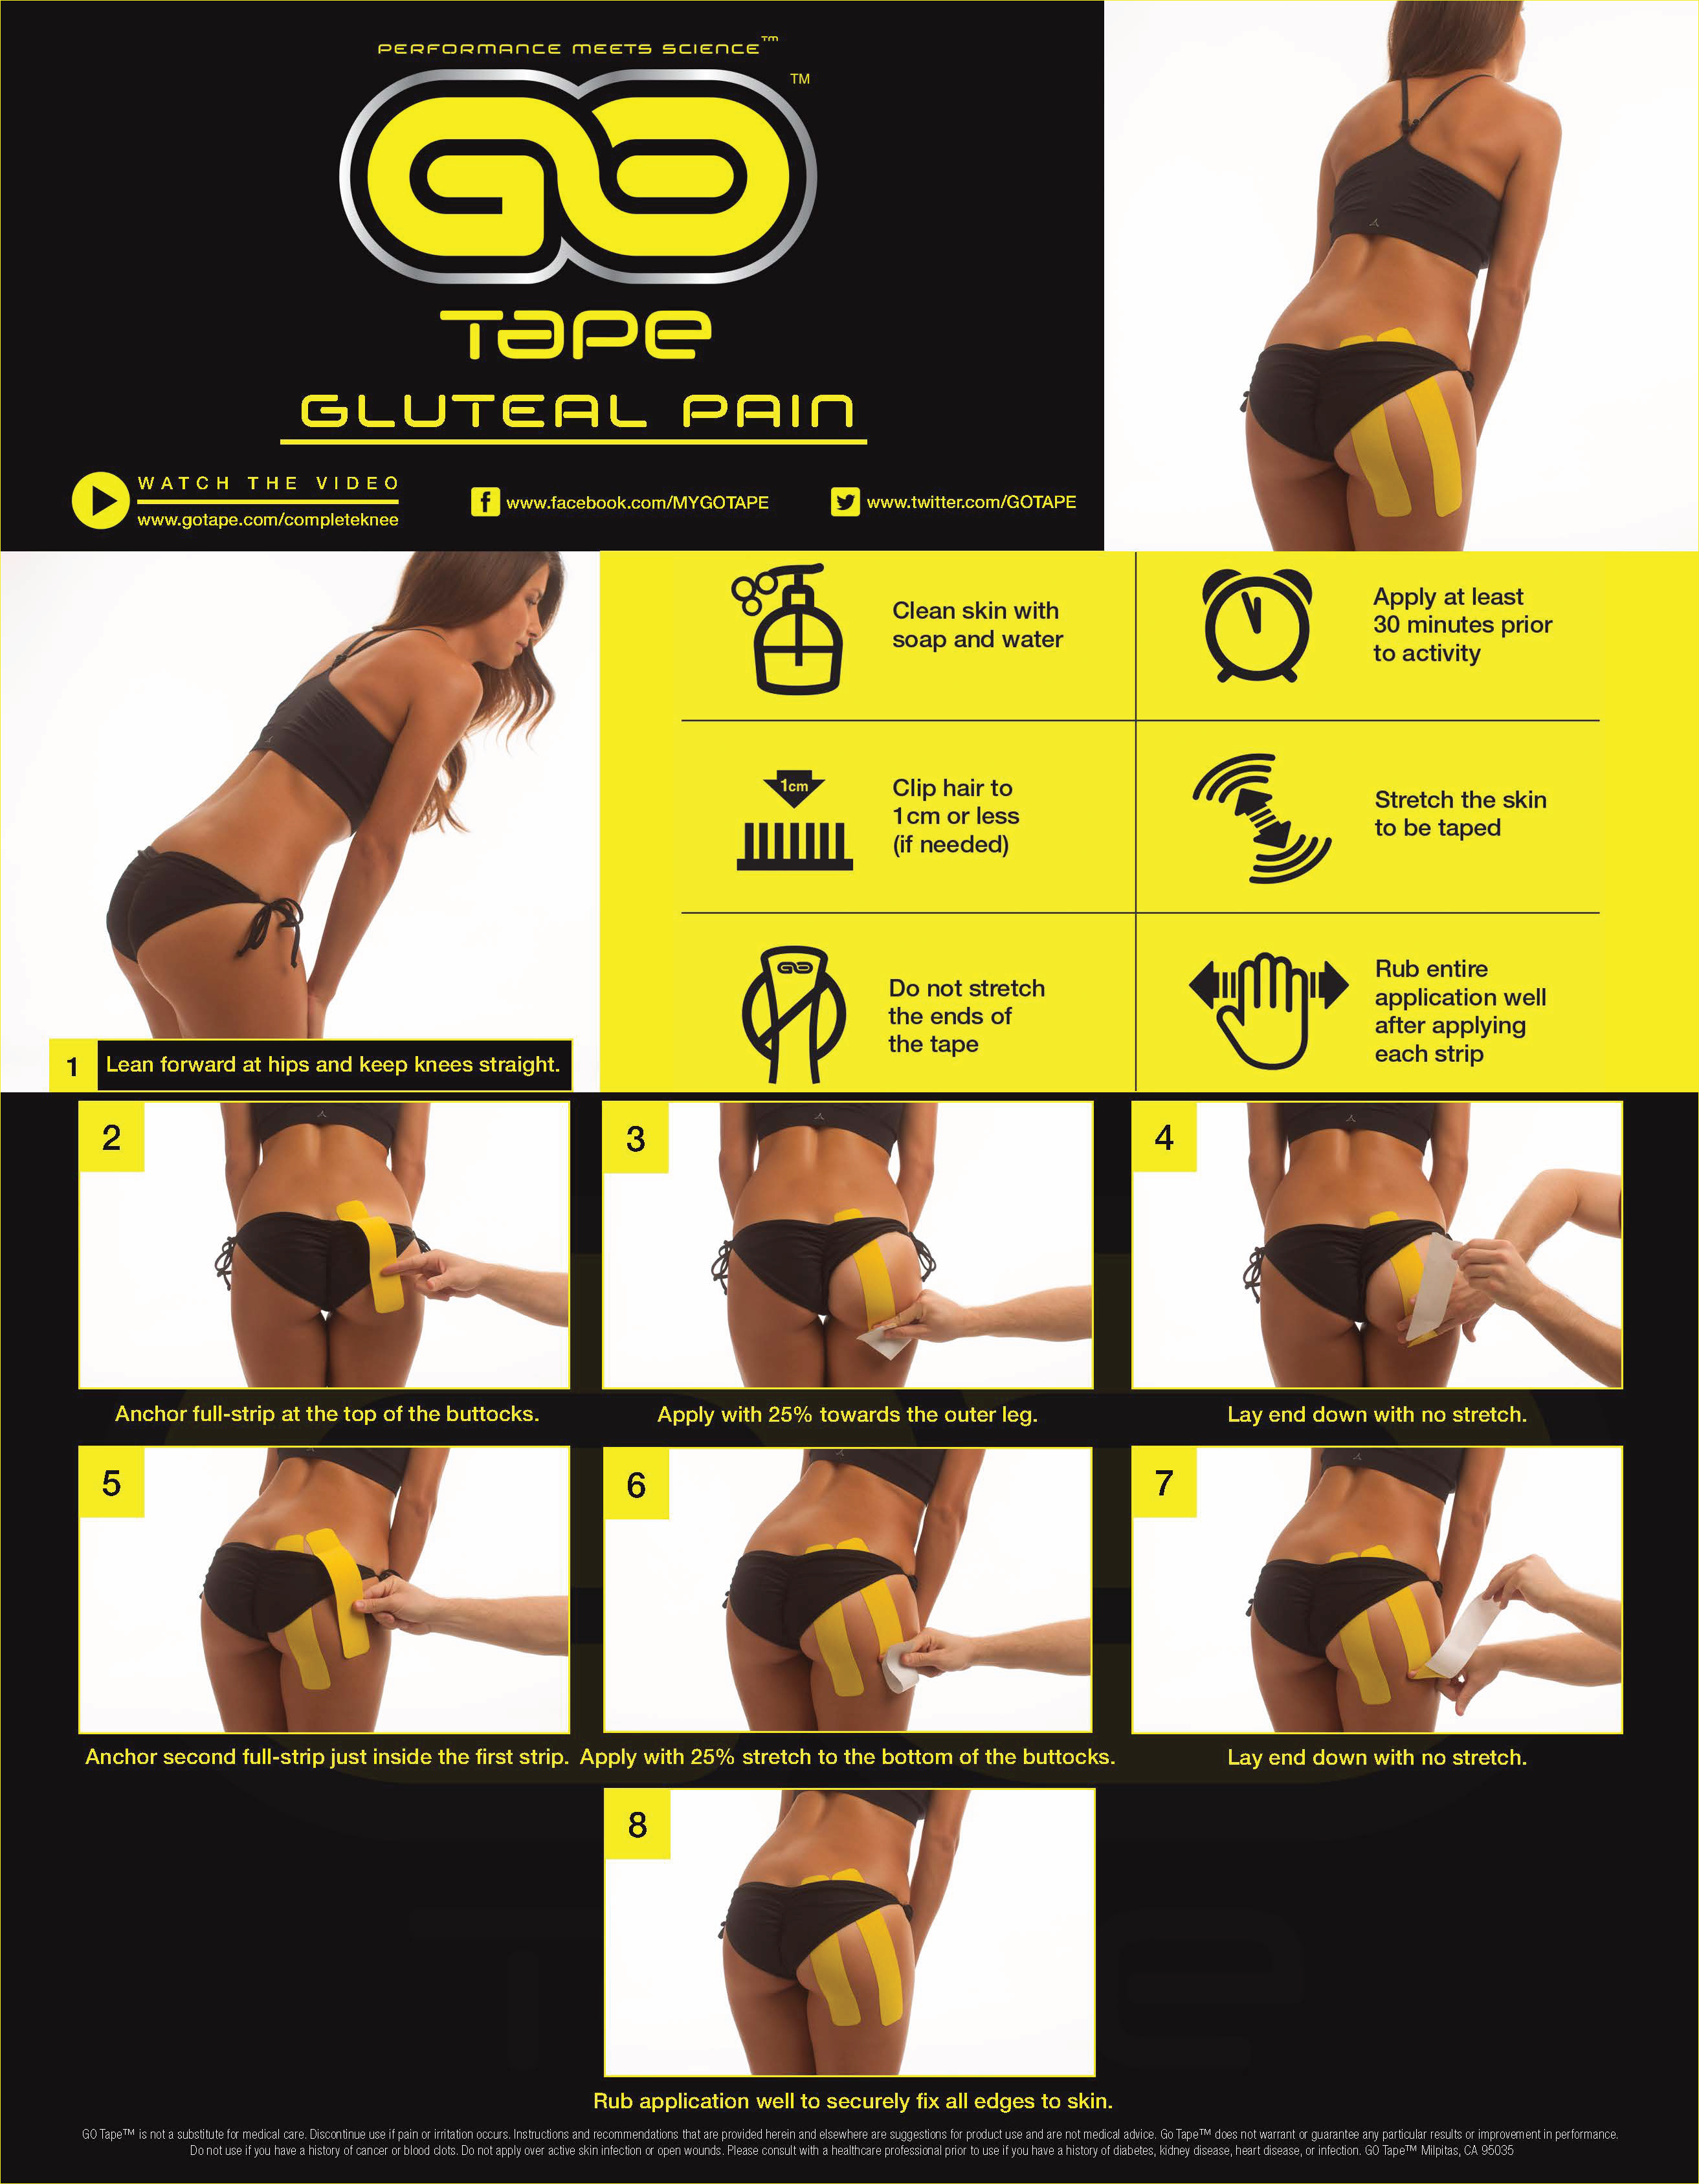 GO_Tape_Application-Instructions_Gluteal_Pain